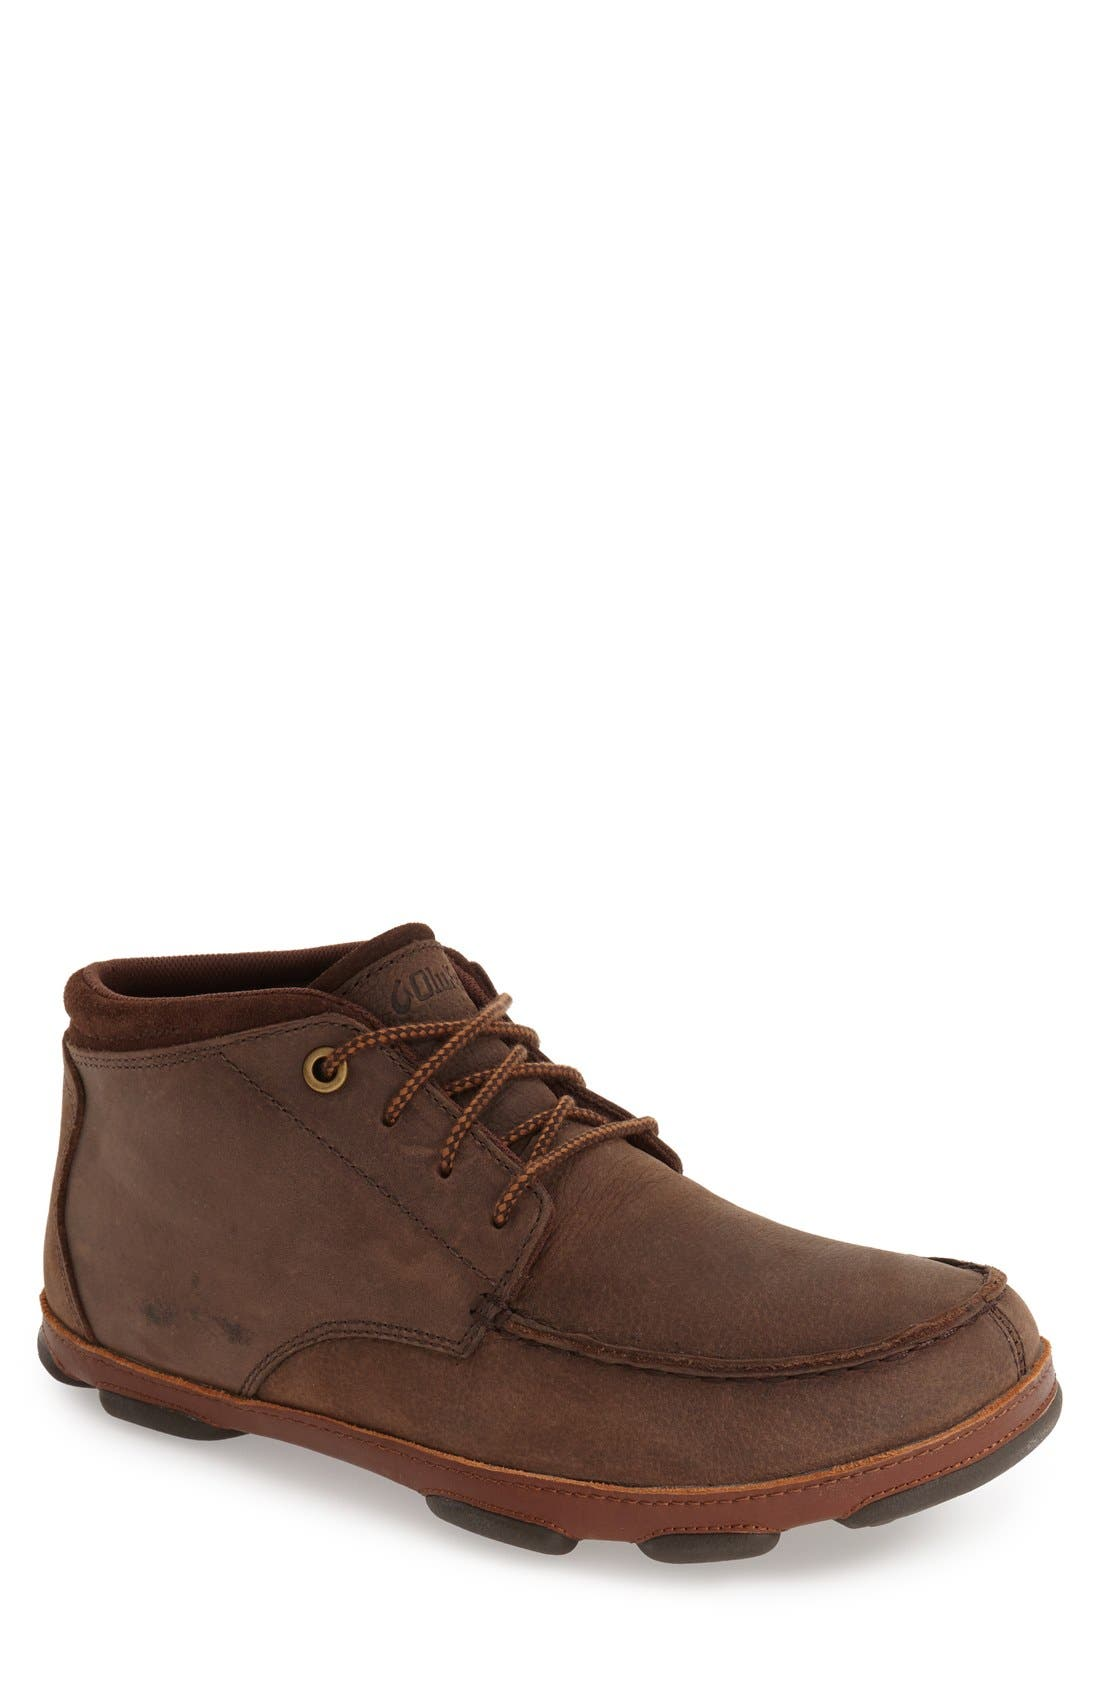 'Hamakua' Moc Toe Boot,                         Main,                         color, DARK WOOD/ TOFFEE LEATHER